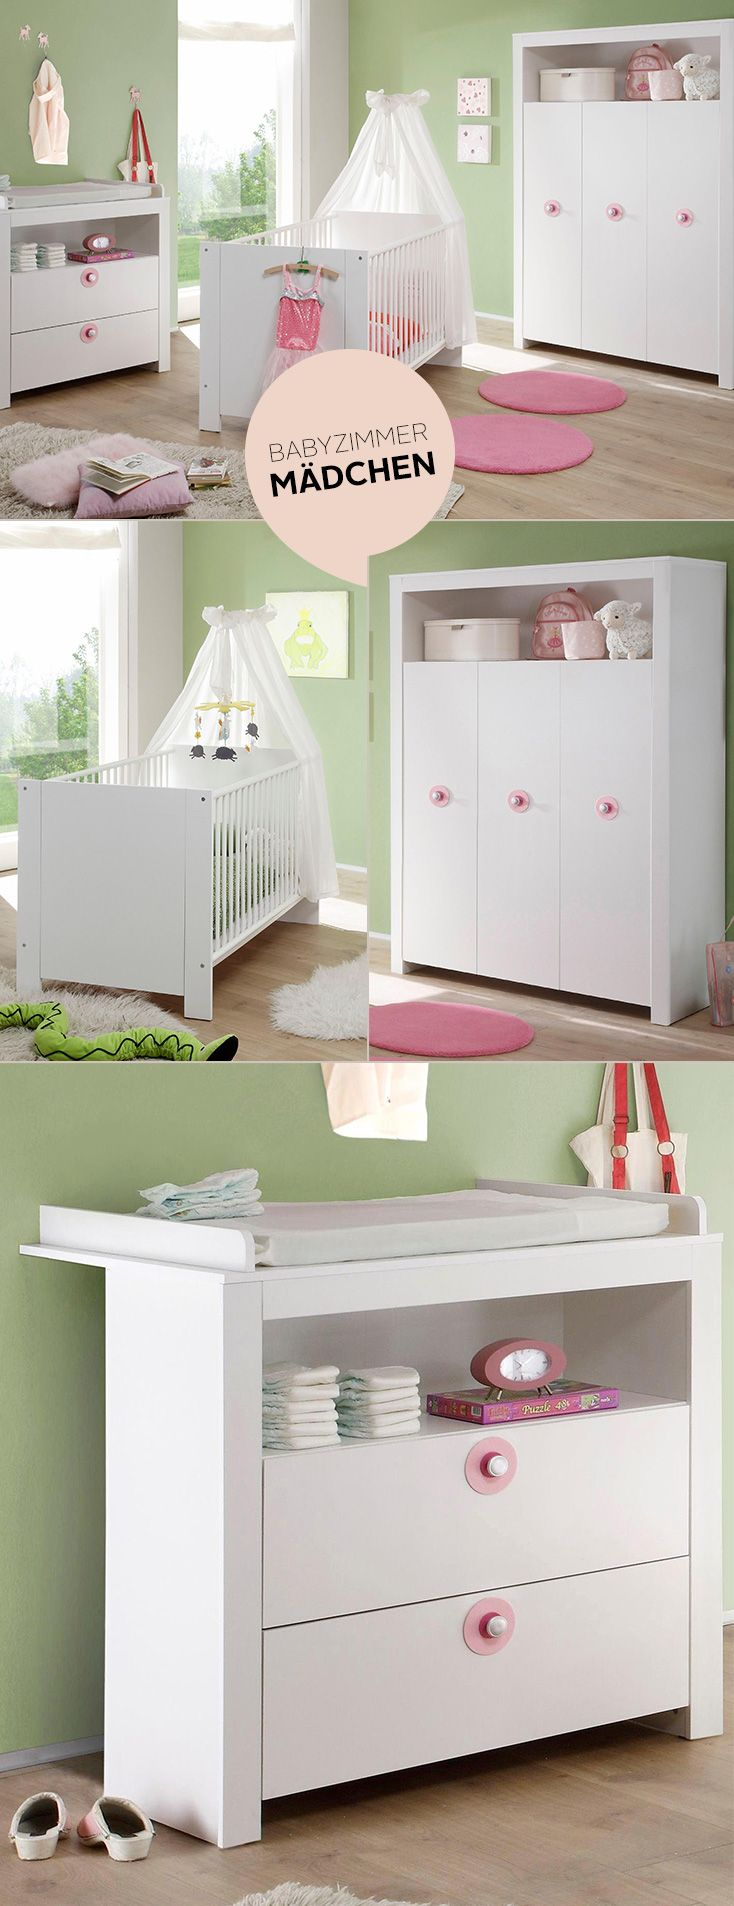 Babybett Und Wickelkommode Ikea 25+ Best Ideas About Babybett Mit Wickelkommode On